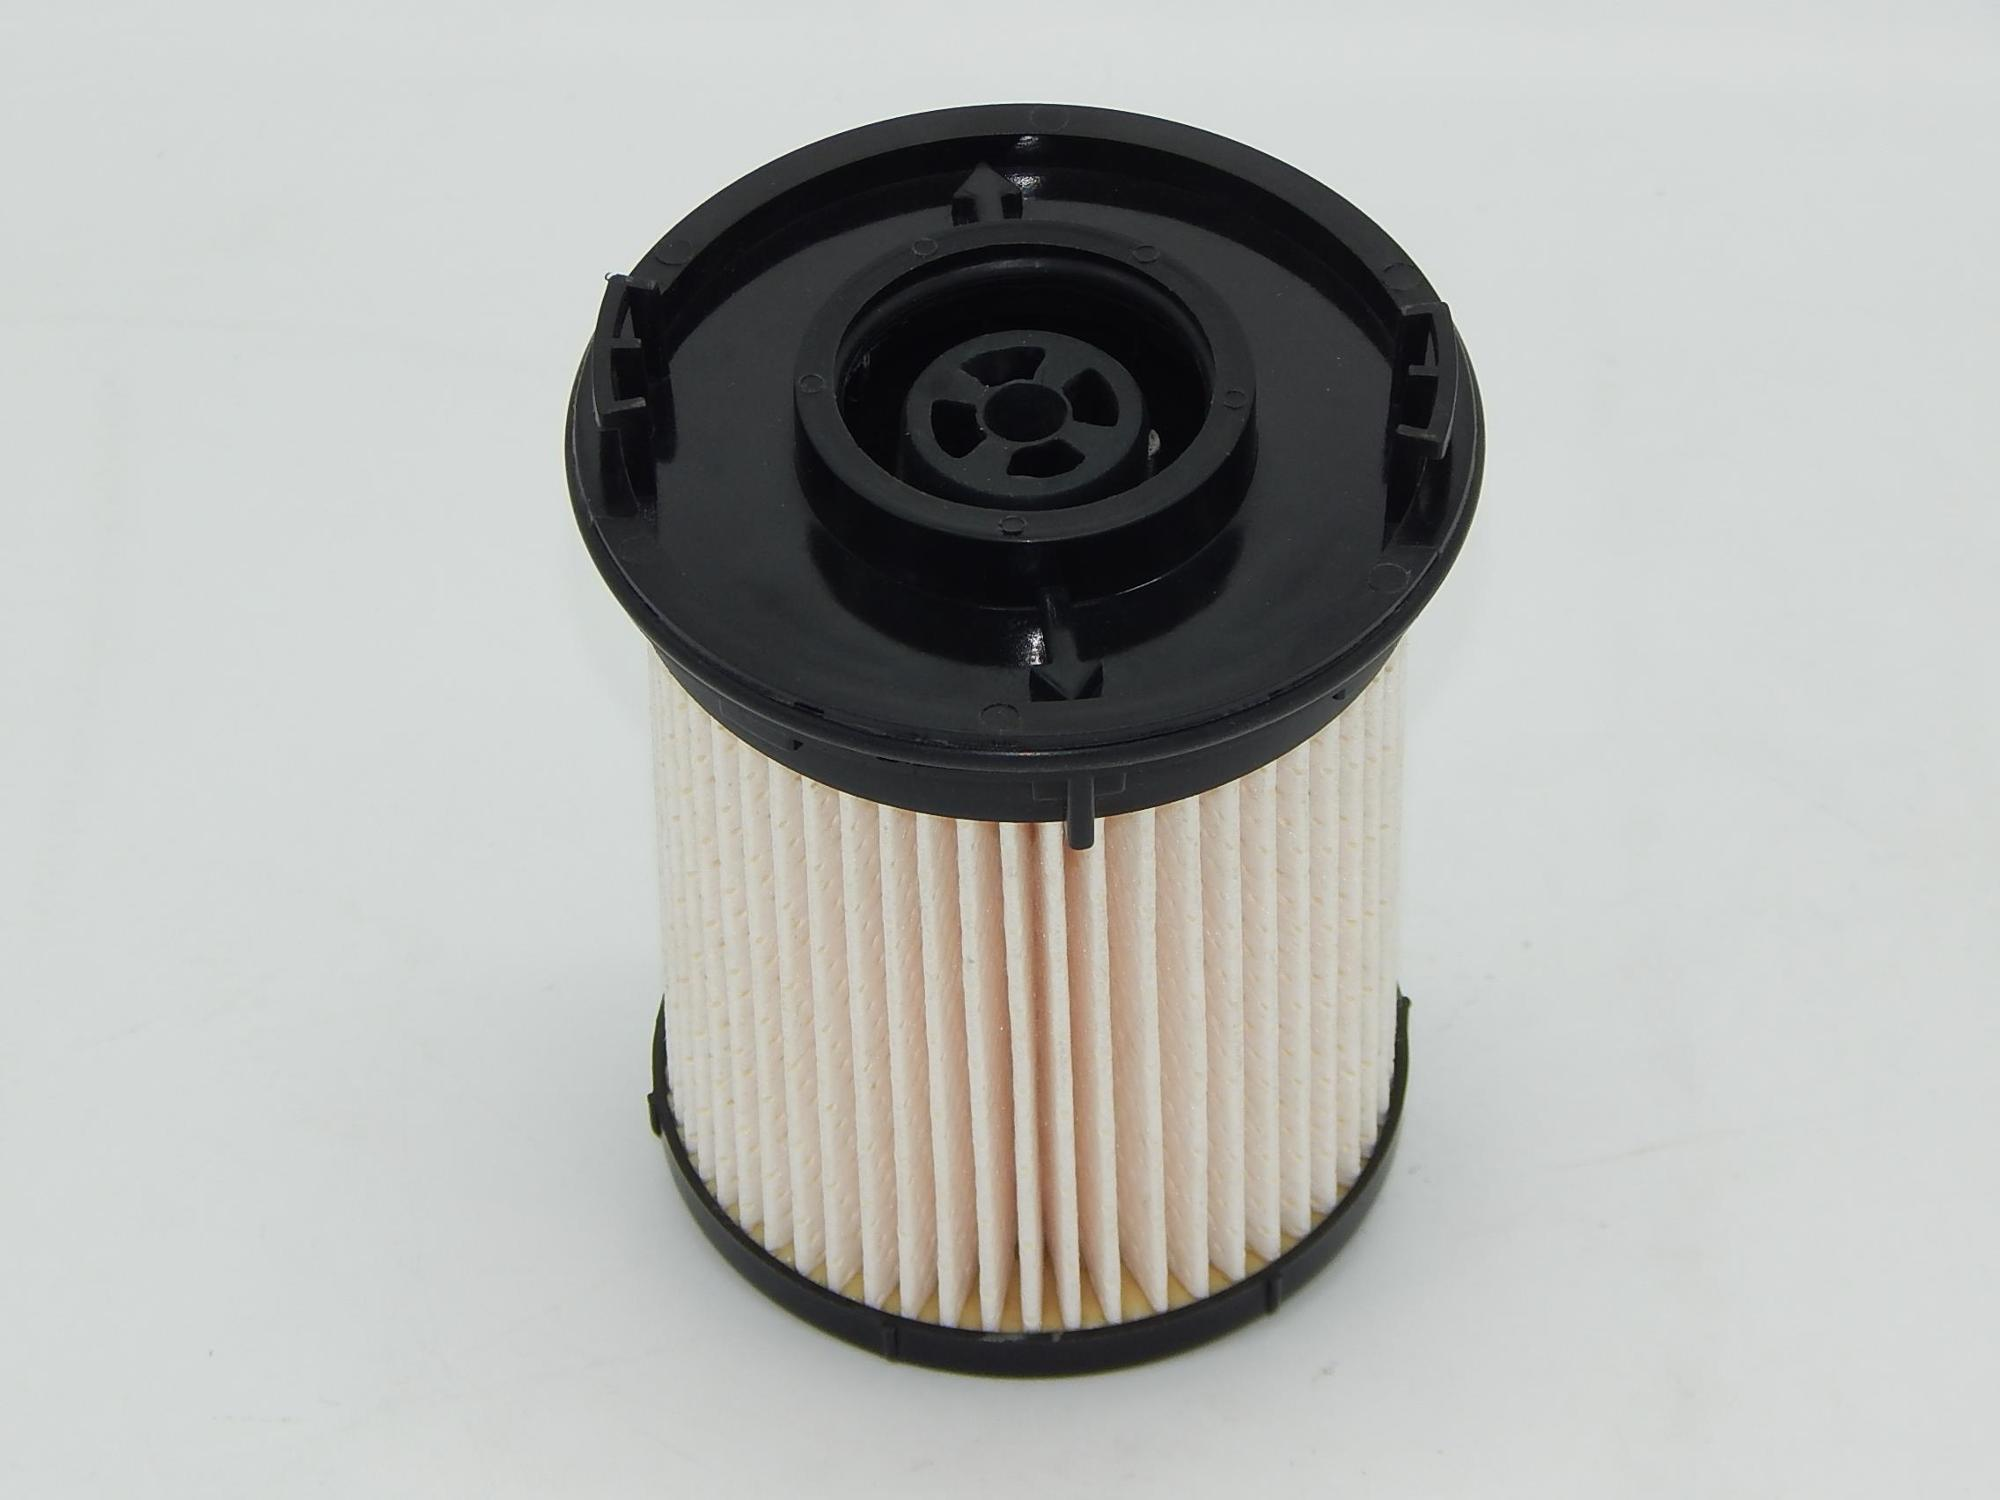 king fuel filter fuel filter 11 9957 119957 for thermo king refrigeration units thermo king fuel filter fuel filter 11 9957 119957 for thermo